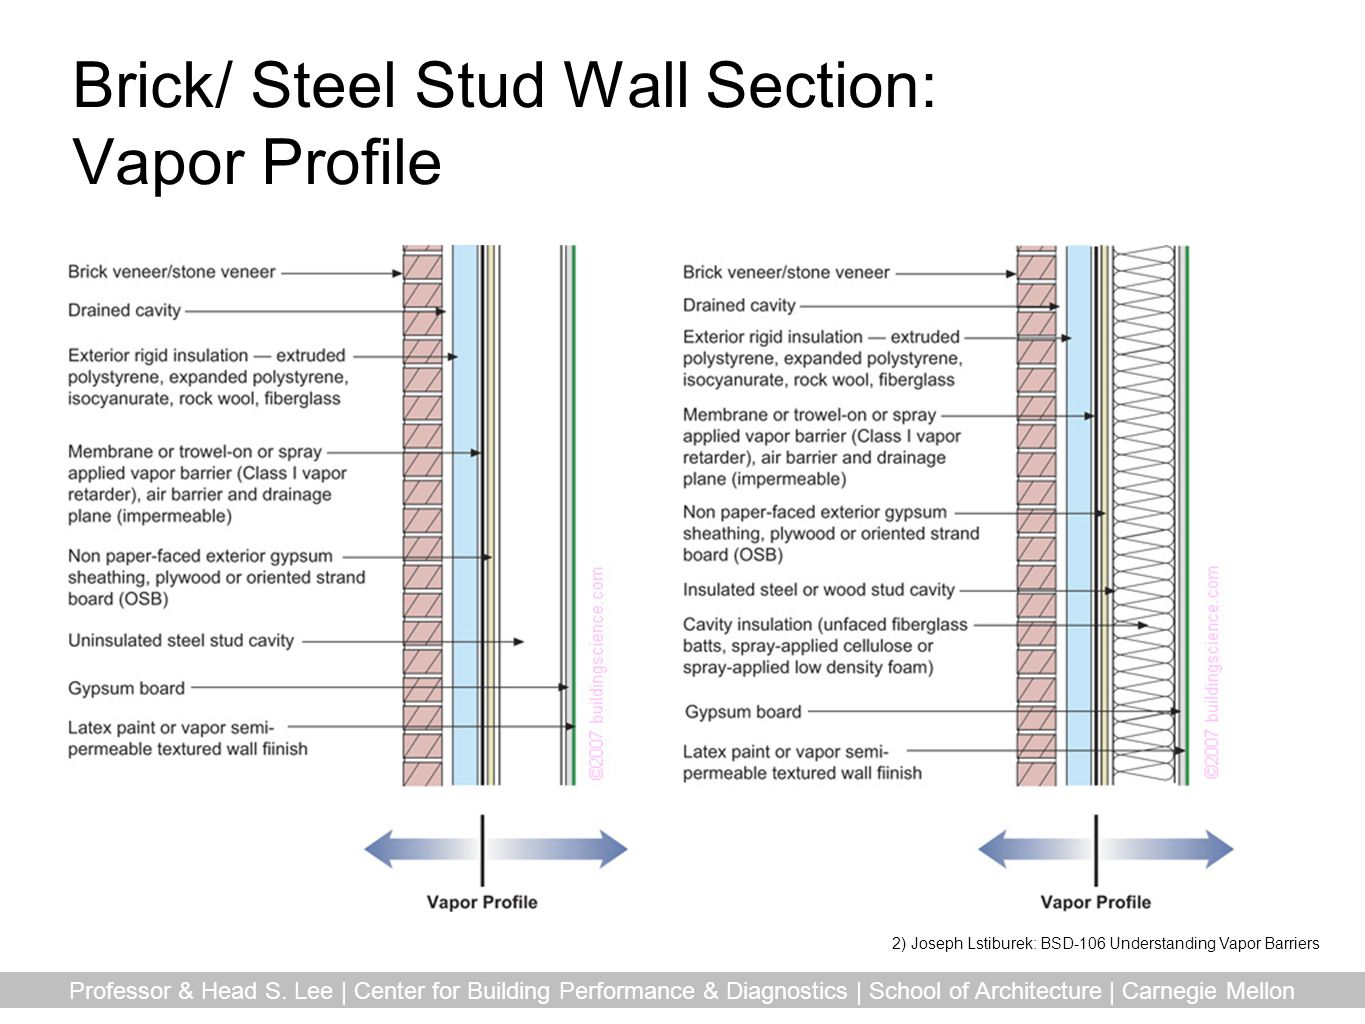 Brick/ Steel Stud Wall Section: Vapor Profile